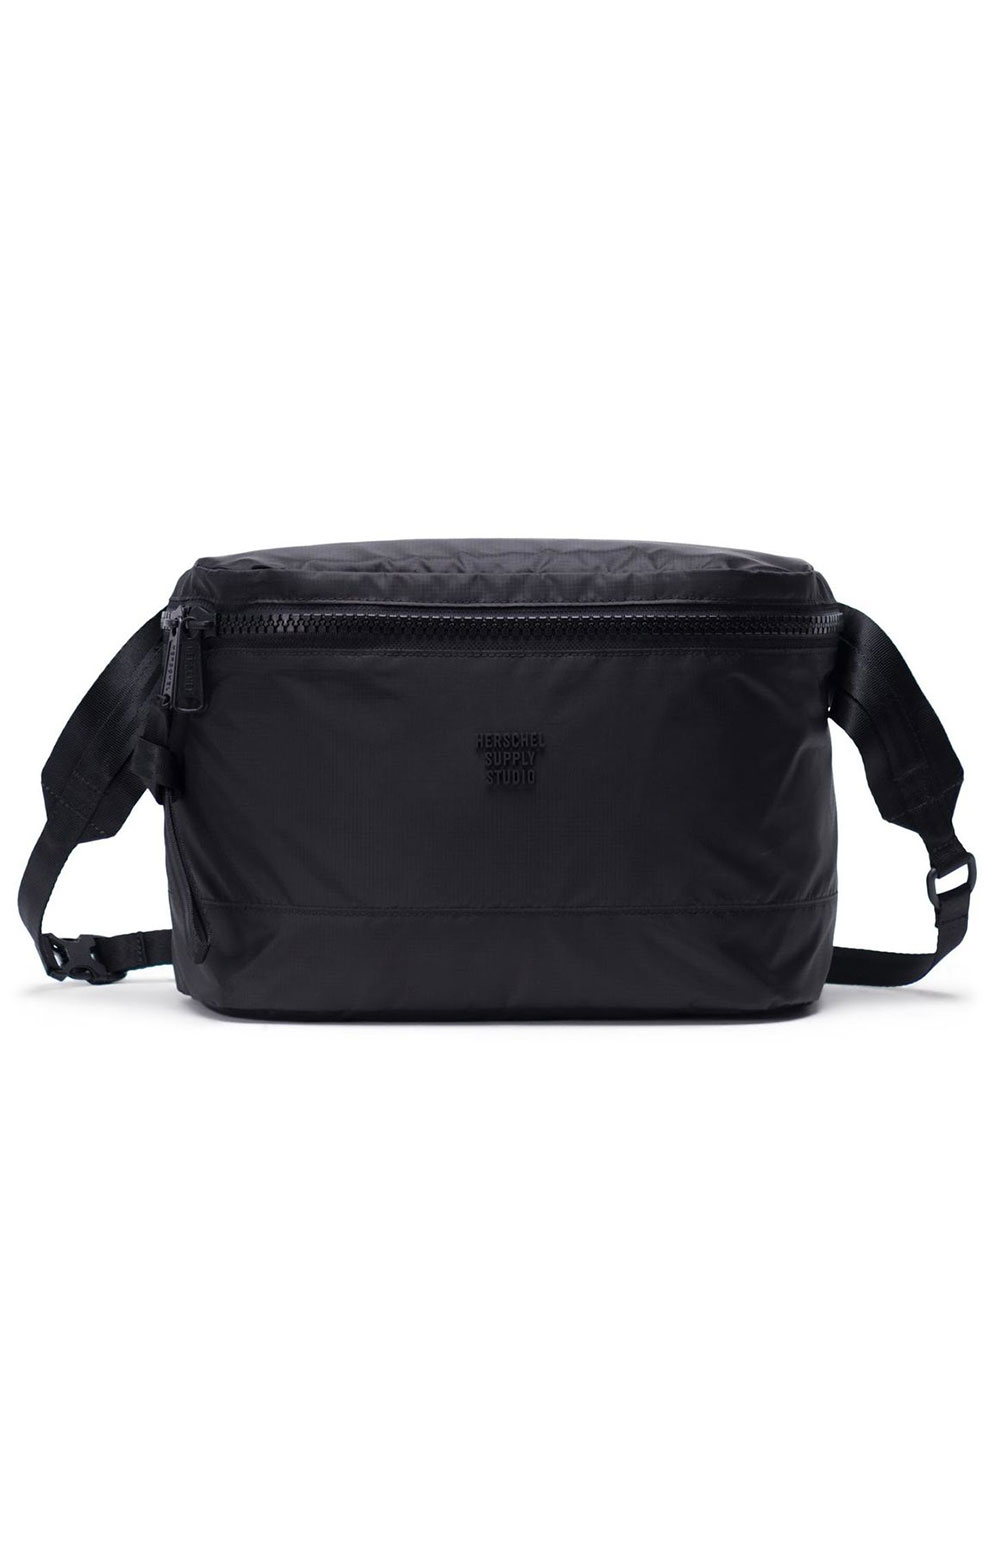 HS9 Hip Pack Studio - Black